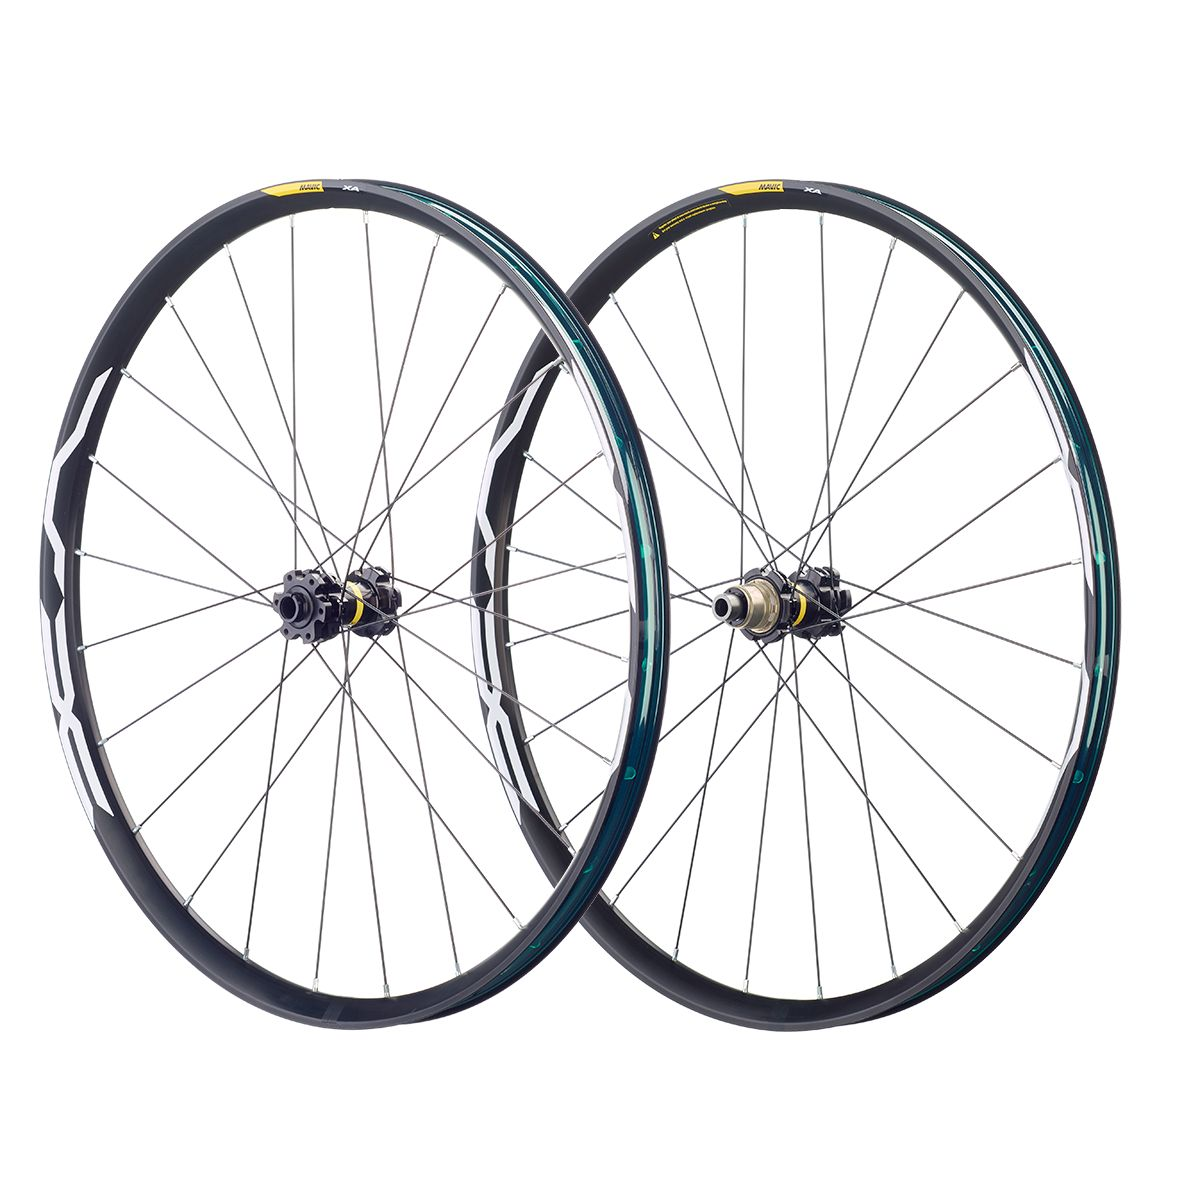 "f8bddceee26 Buy MAVIC XA Disc SRAM XD MTB wheels 27,5"" /29"" 2019 